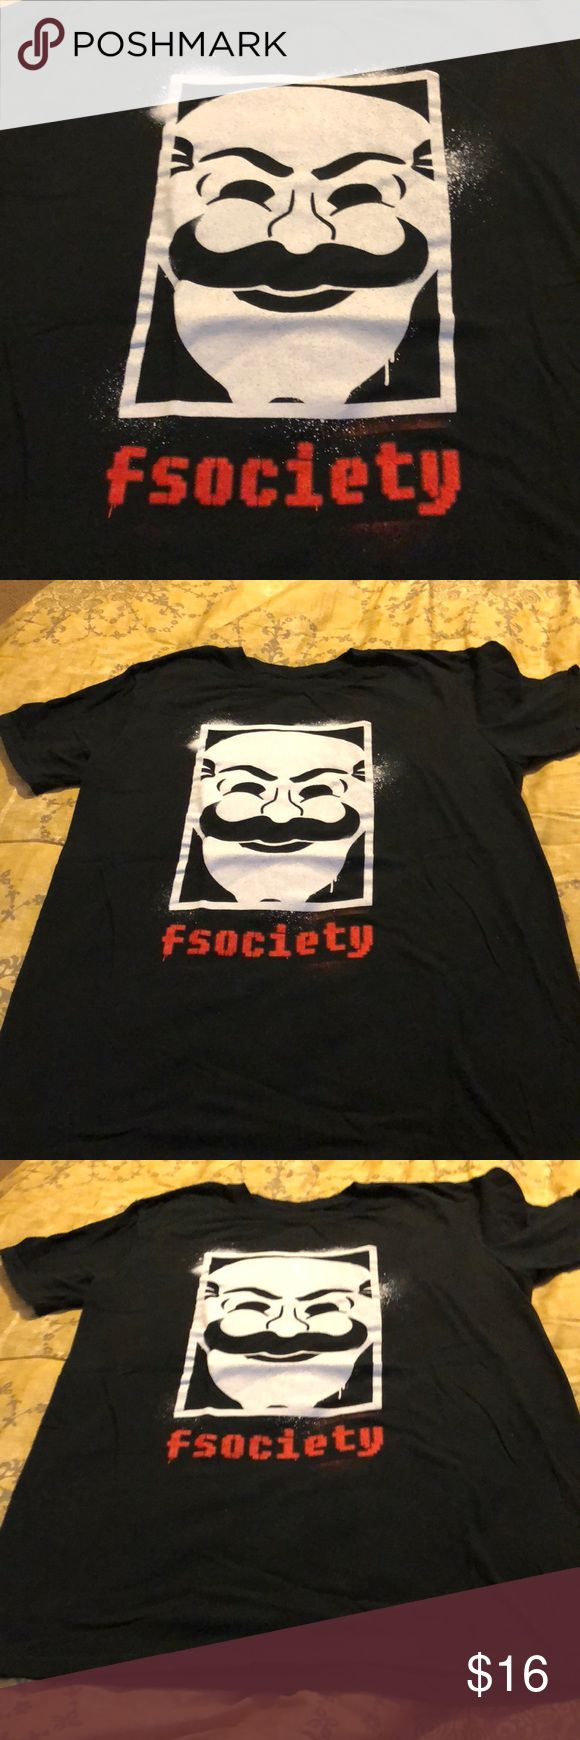 Mr. Robot (TV Show) Men's Medium T-shirt Brand New Brand new T-shirt from Loot Crate of Mr. Robot (TV Show) in men's Medium. Never worn or washed but Loot Crate shirts do not come with tags (so there were no tags to be removed or passed on). Black shirt with white decal and red letters (fsociety). Perfect for any Mr. Robot fan! Lootware Shirts Tees - Short Sleeve